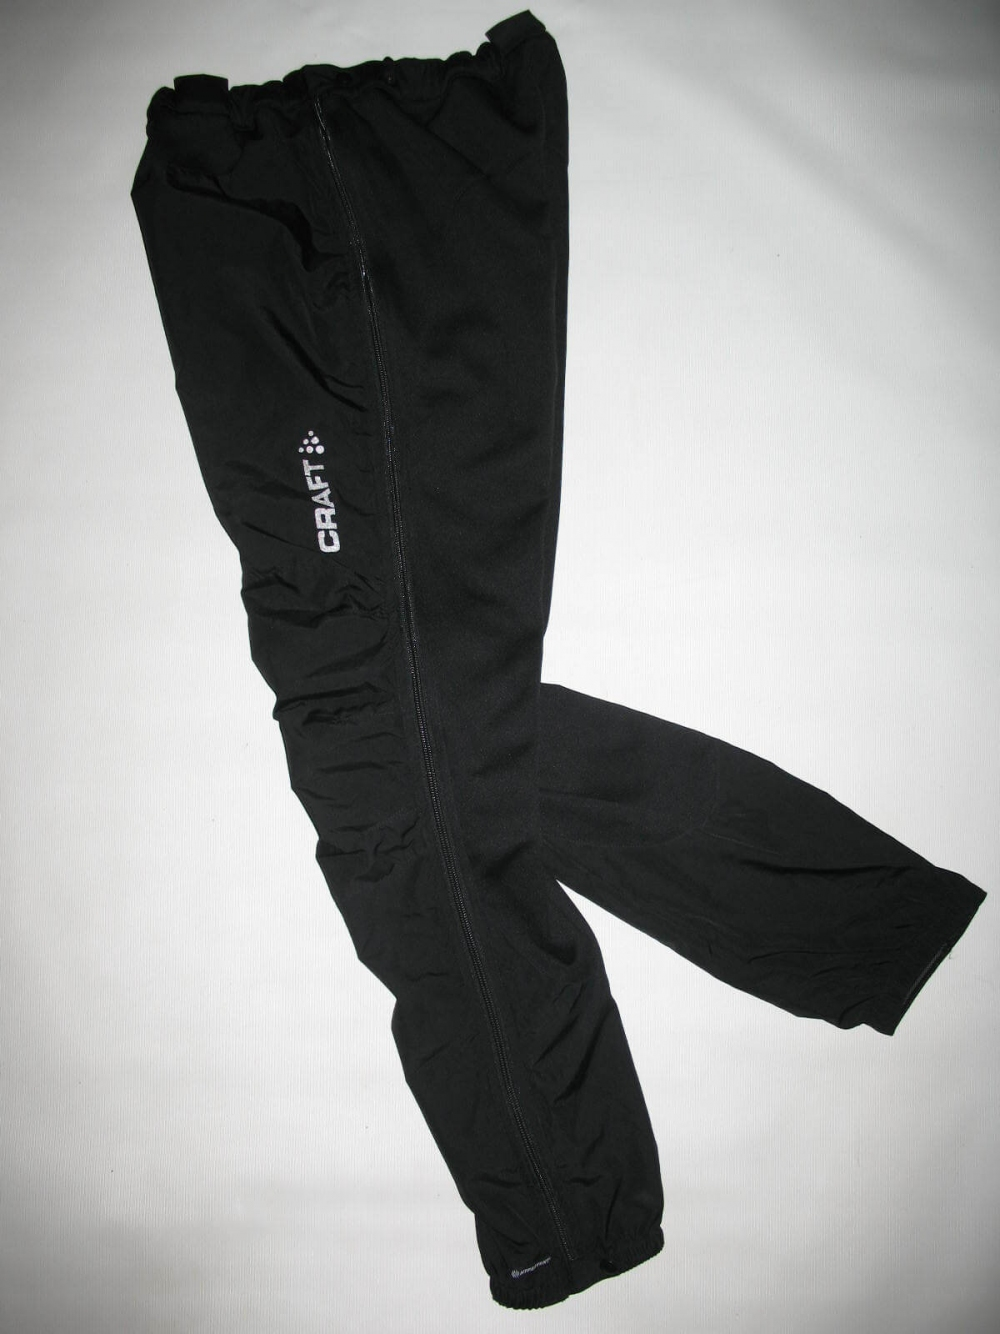 Брюки CRAFT hypervent pants (размер М) - 2